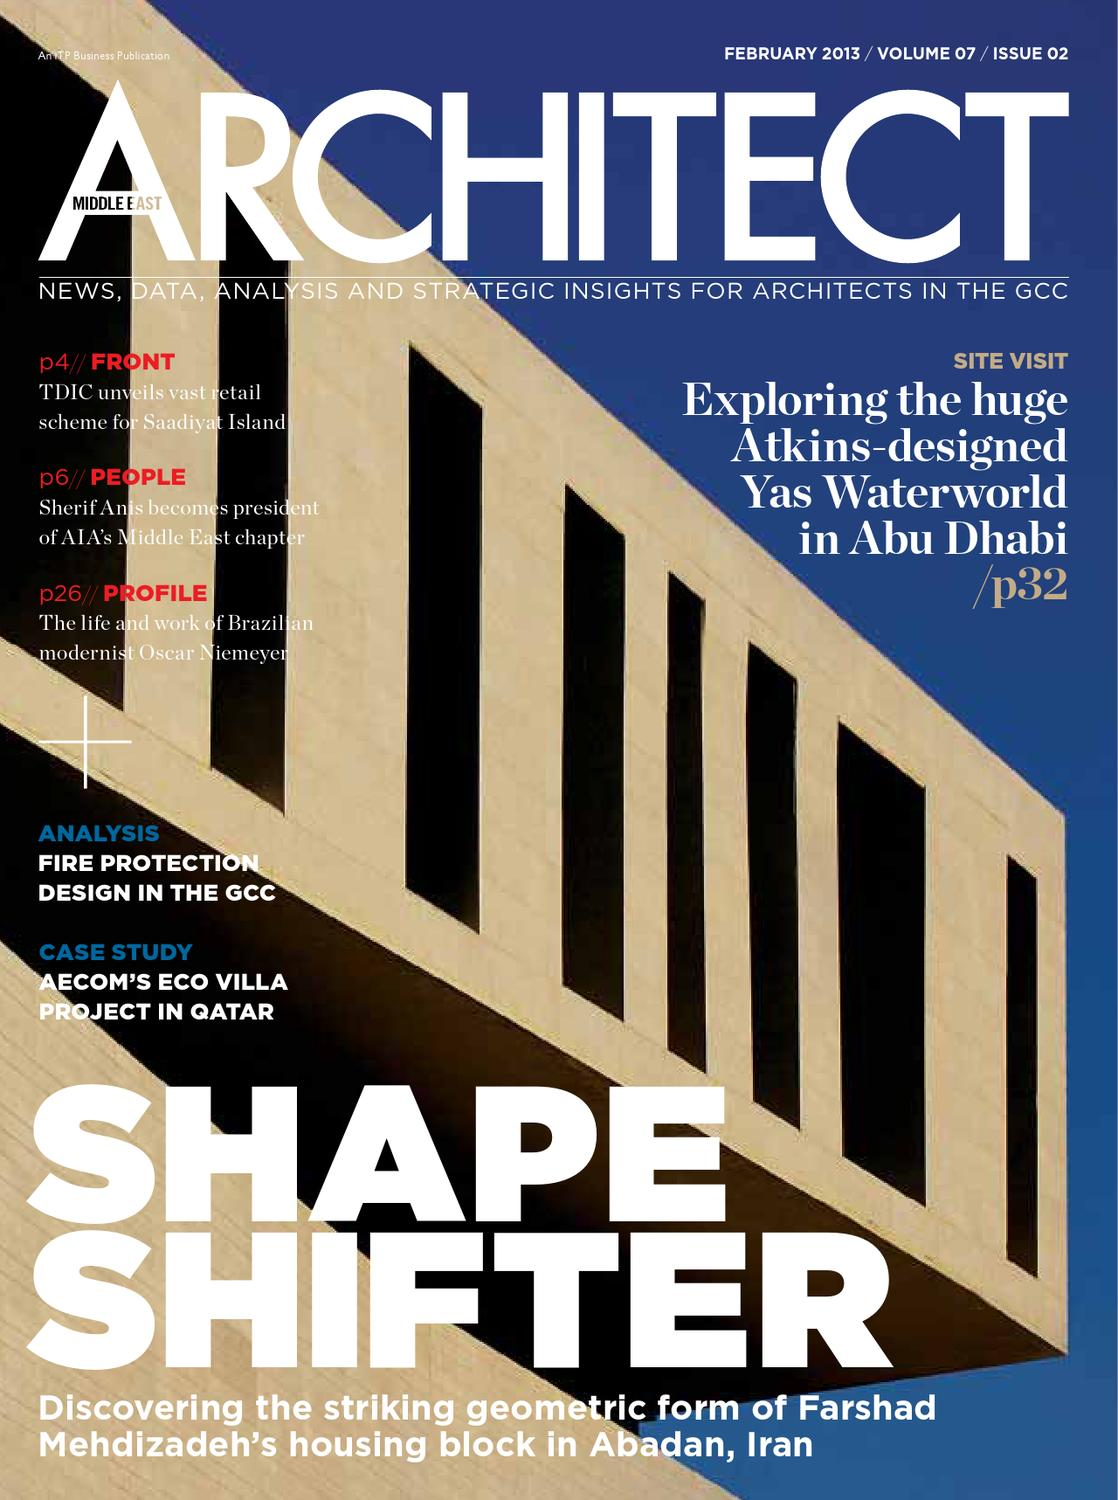 Middle East Architect February 2013 By Centroid Planners Architects Engineers Issuu